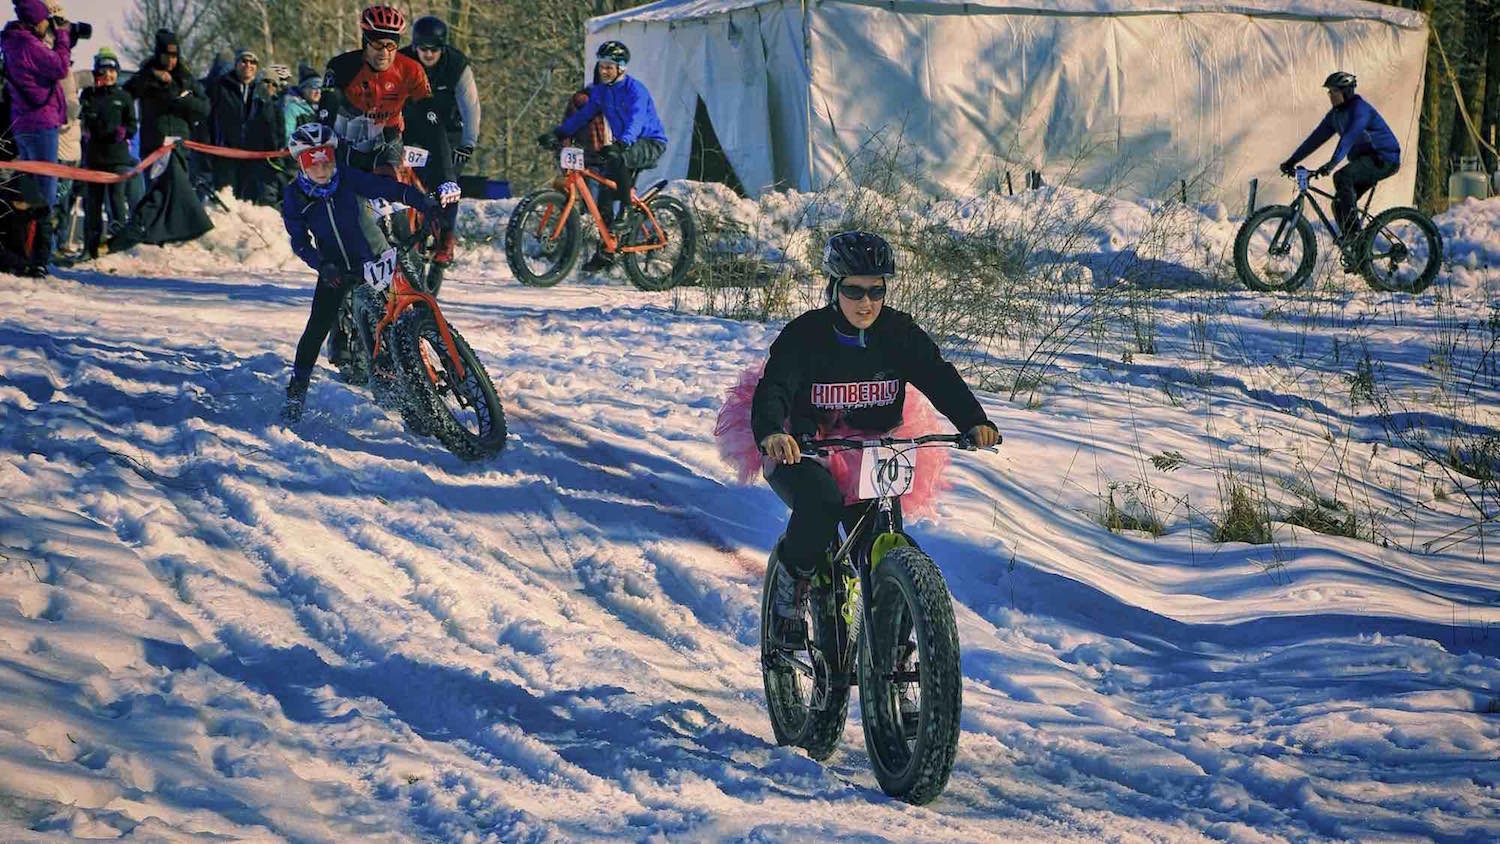 Fat bikes and fashion come together for a young racer sporting a tutu.